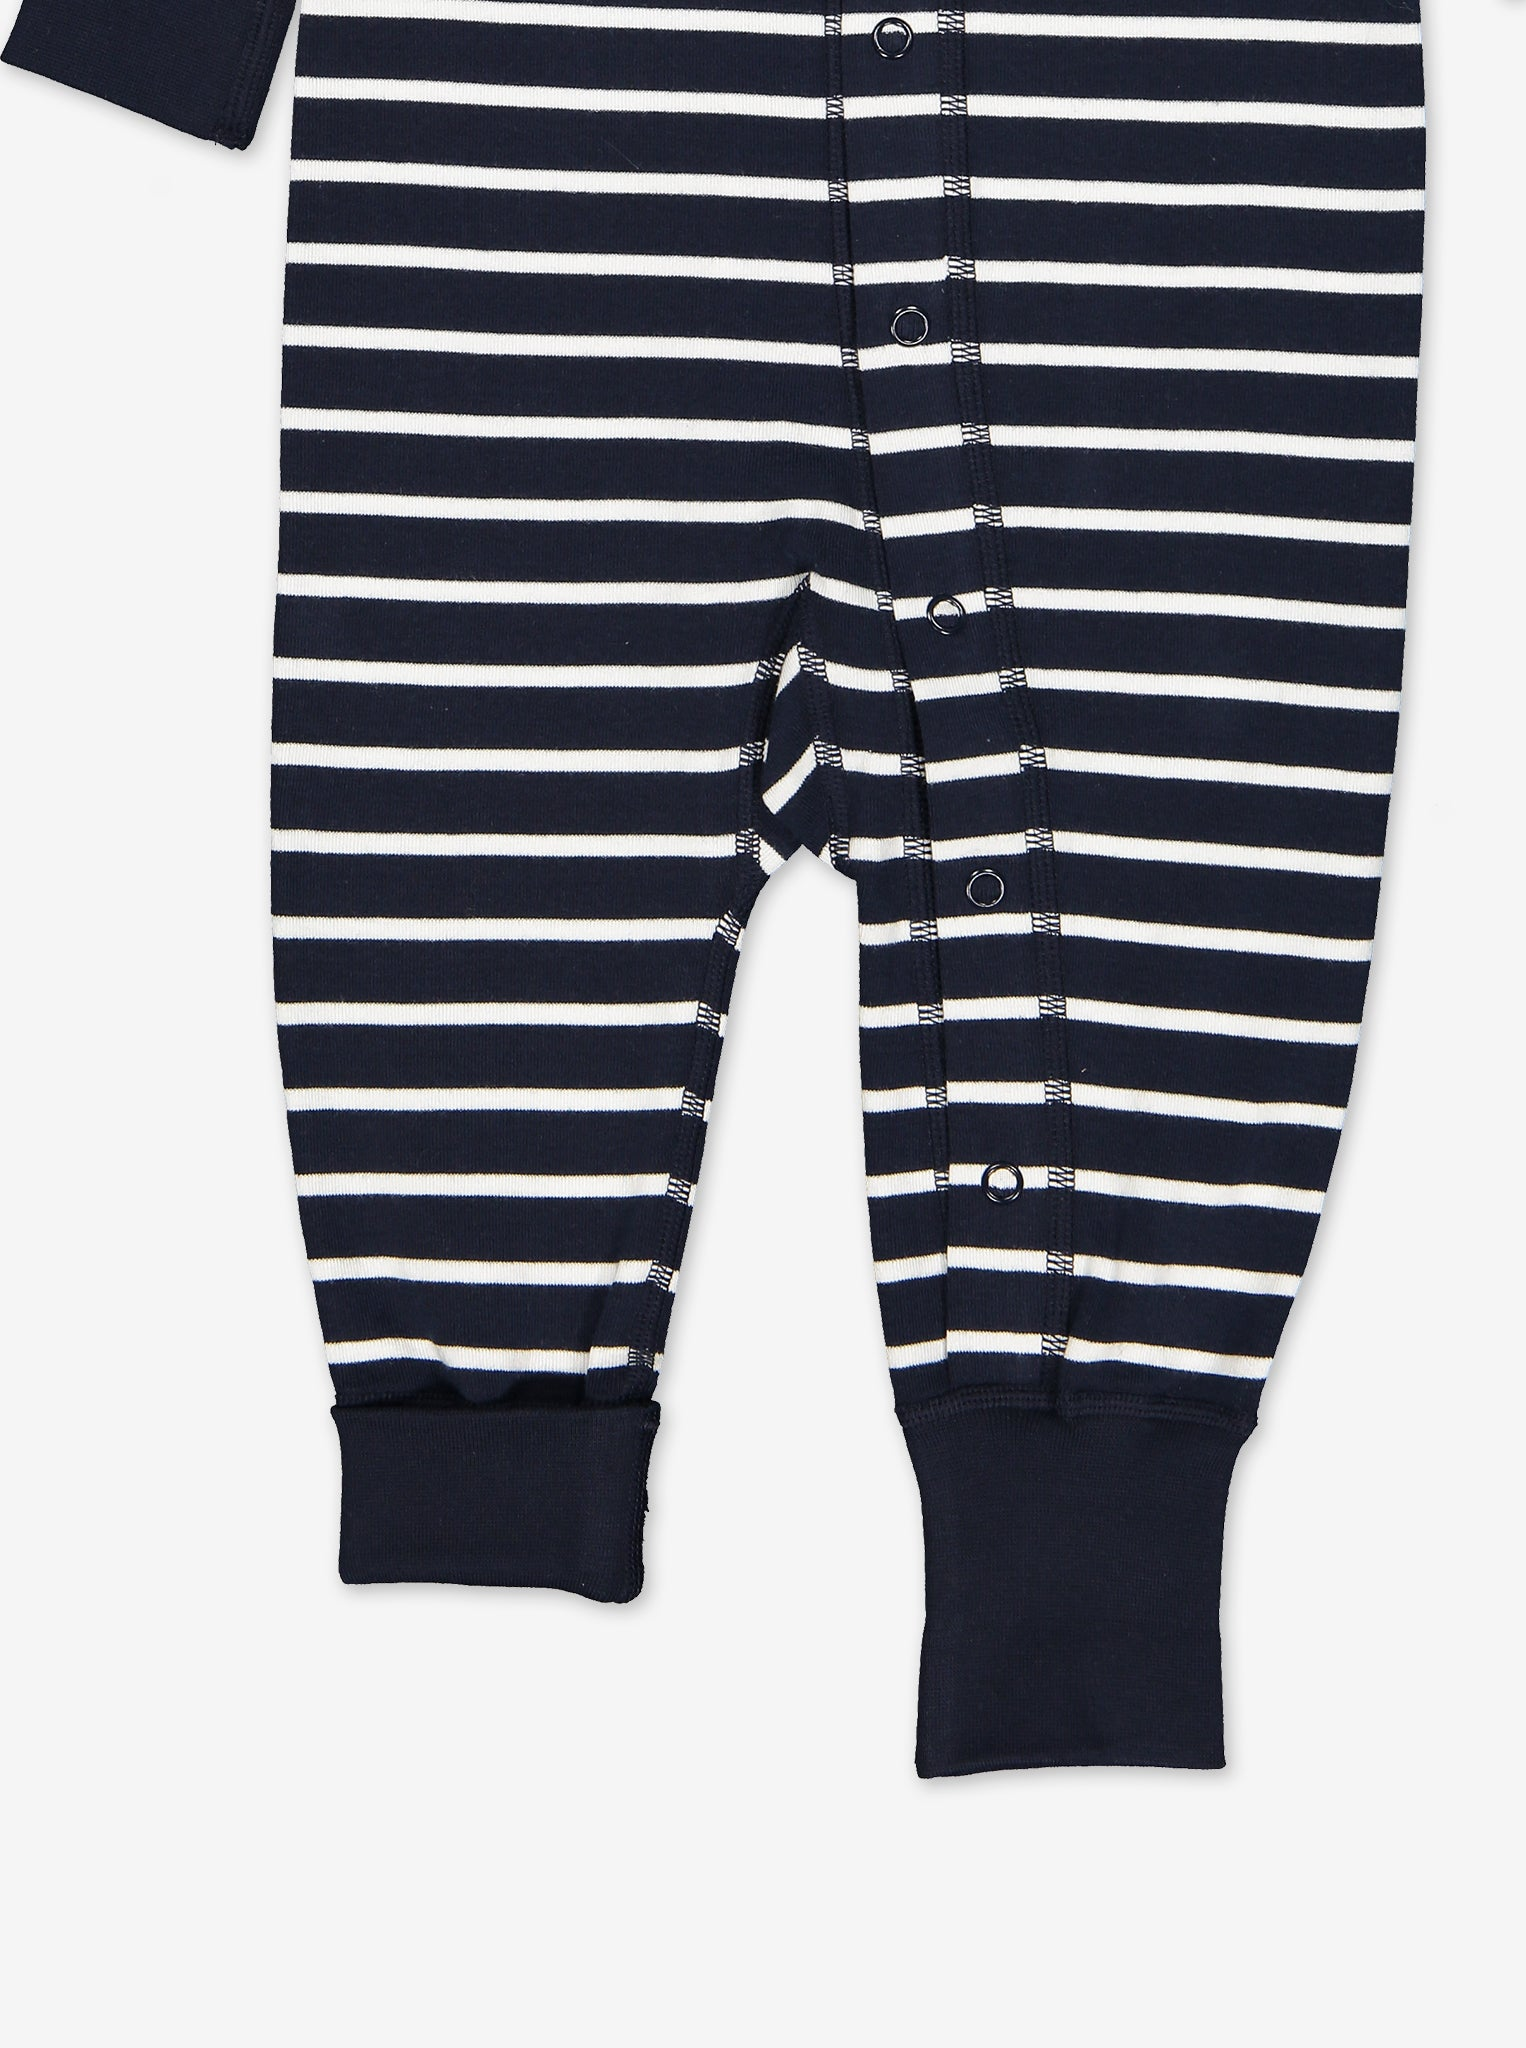 Bottom area of an all-in-one babysuit in the colour navy blue and white, made from organic cotton material.